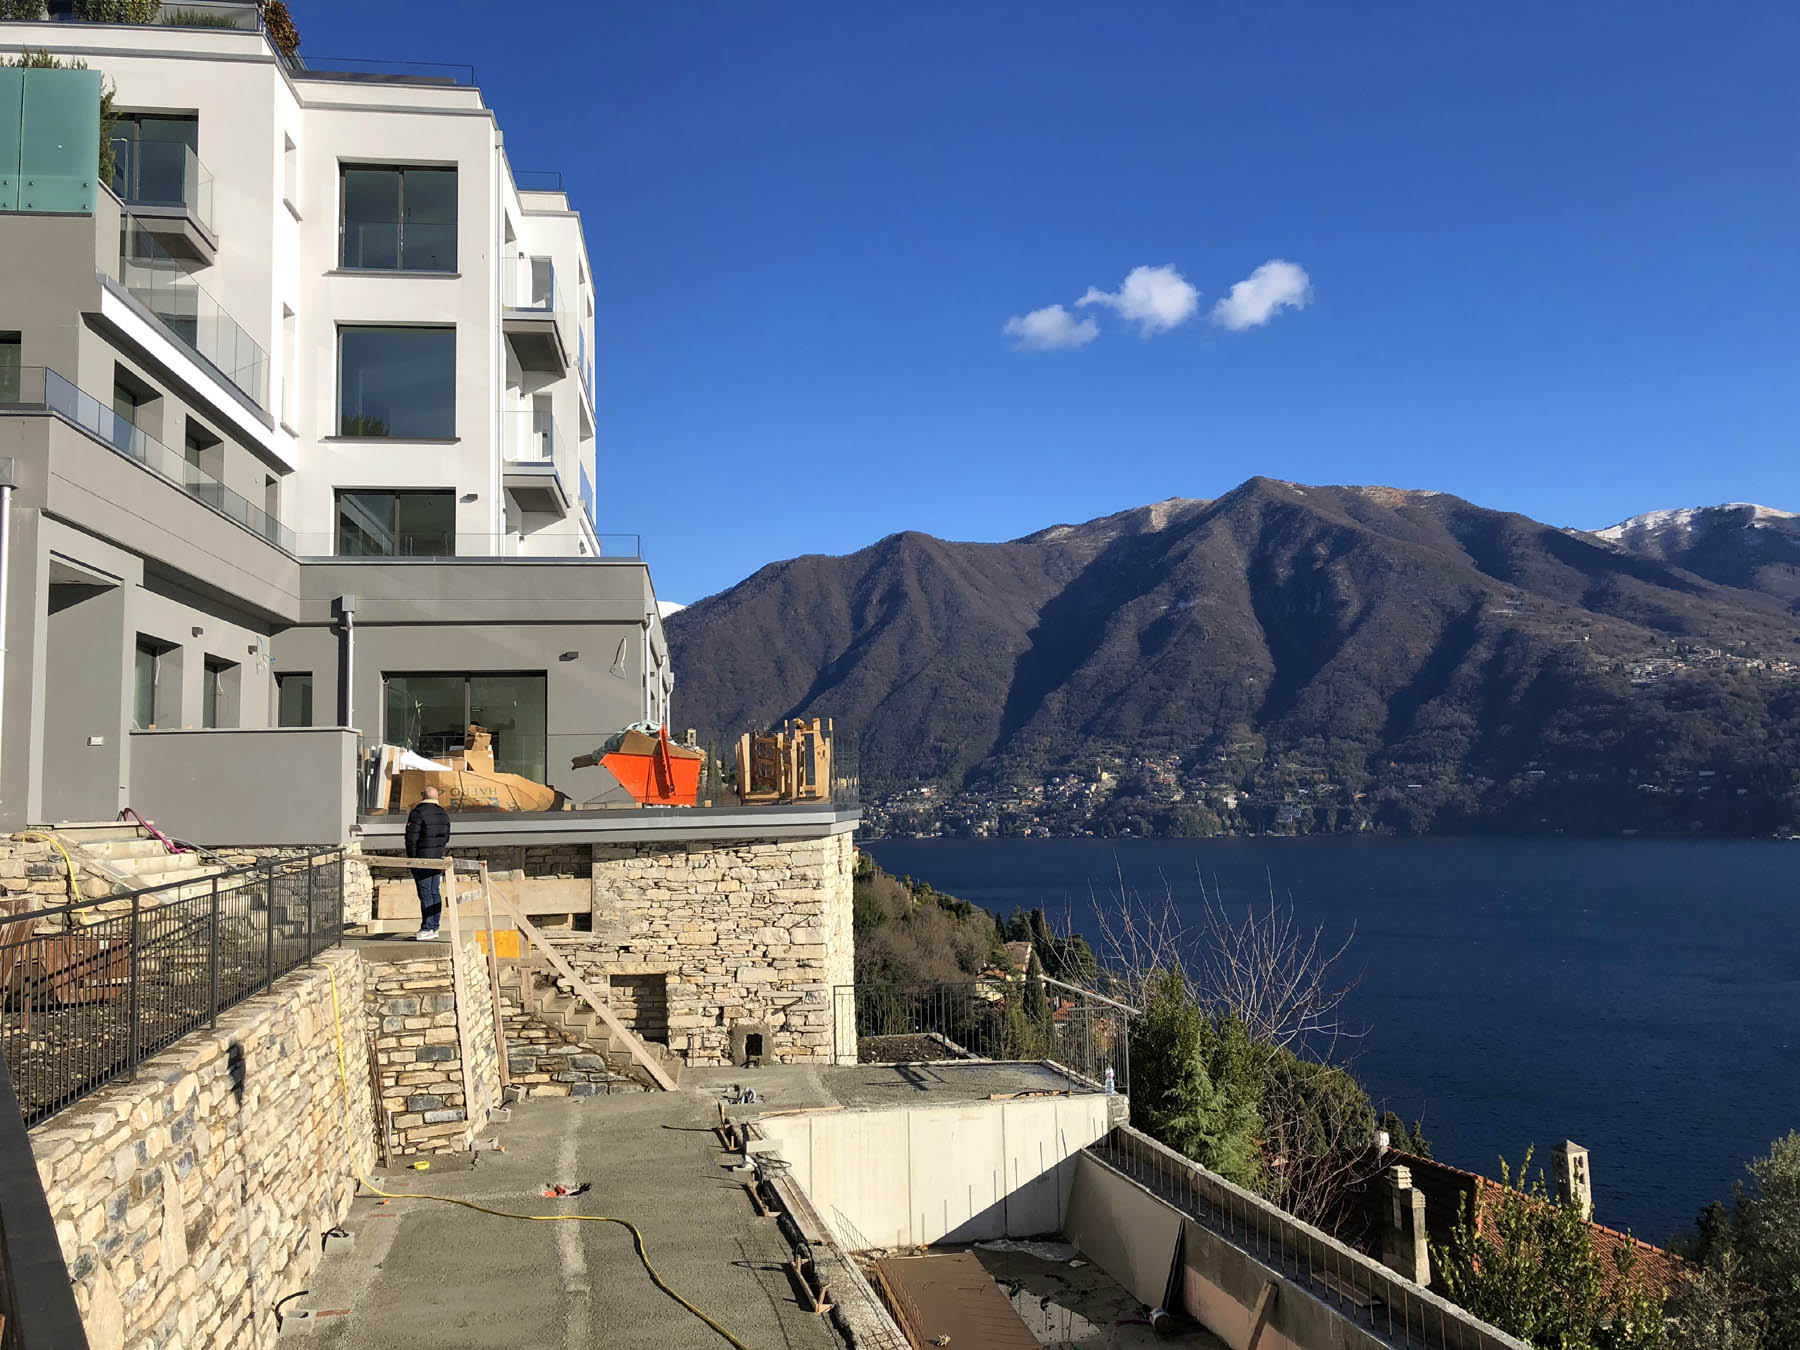 Luxury apartments with lake view in Carate Urio